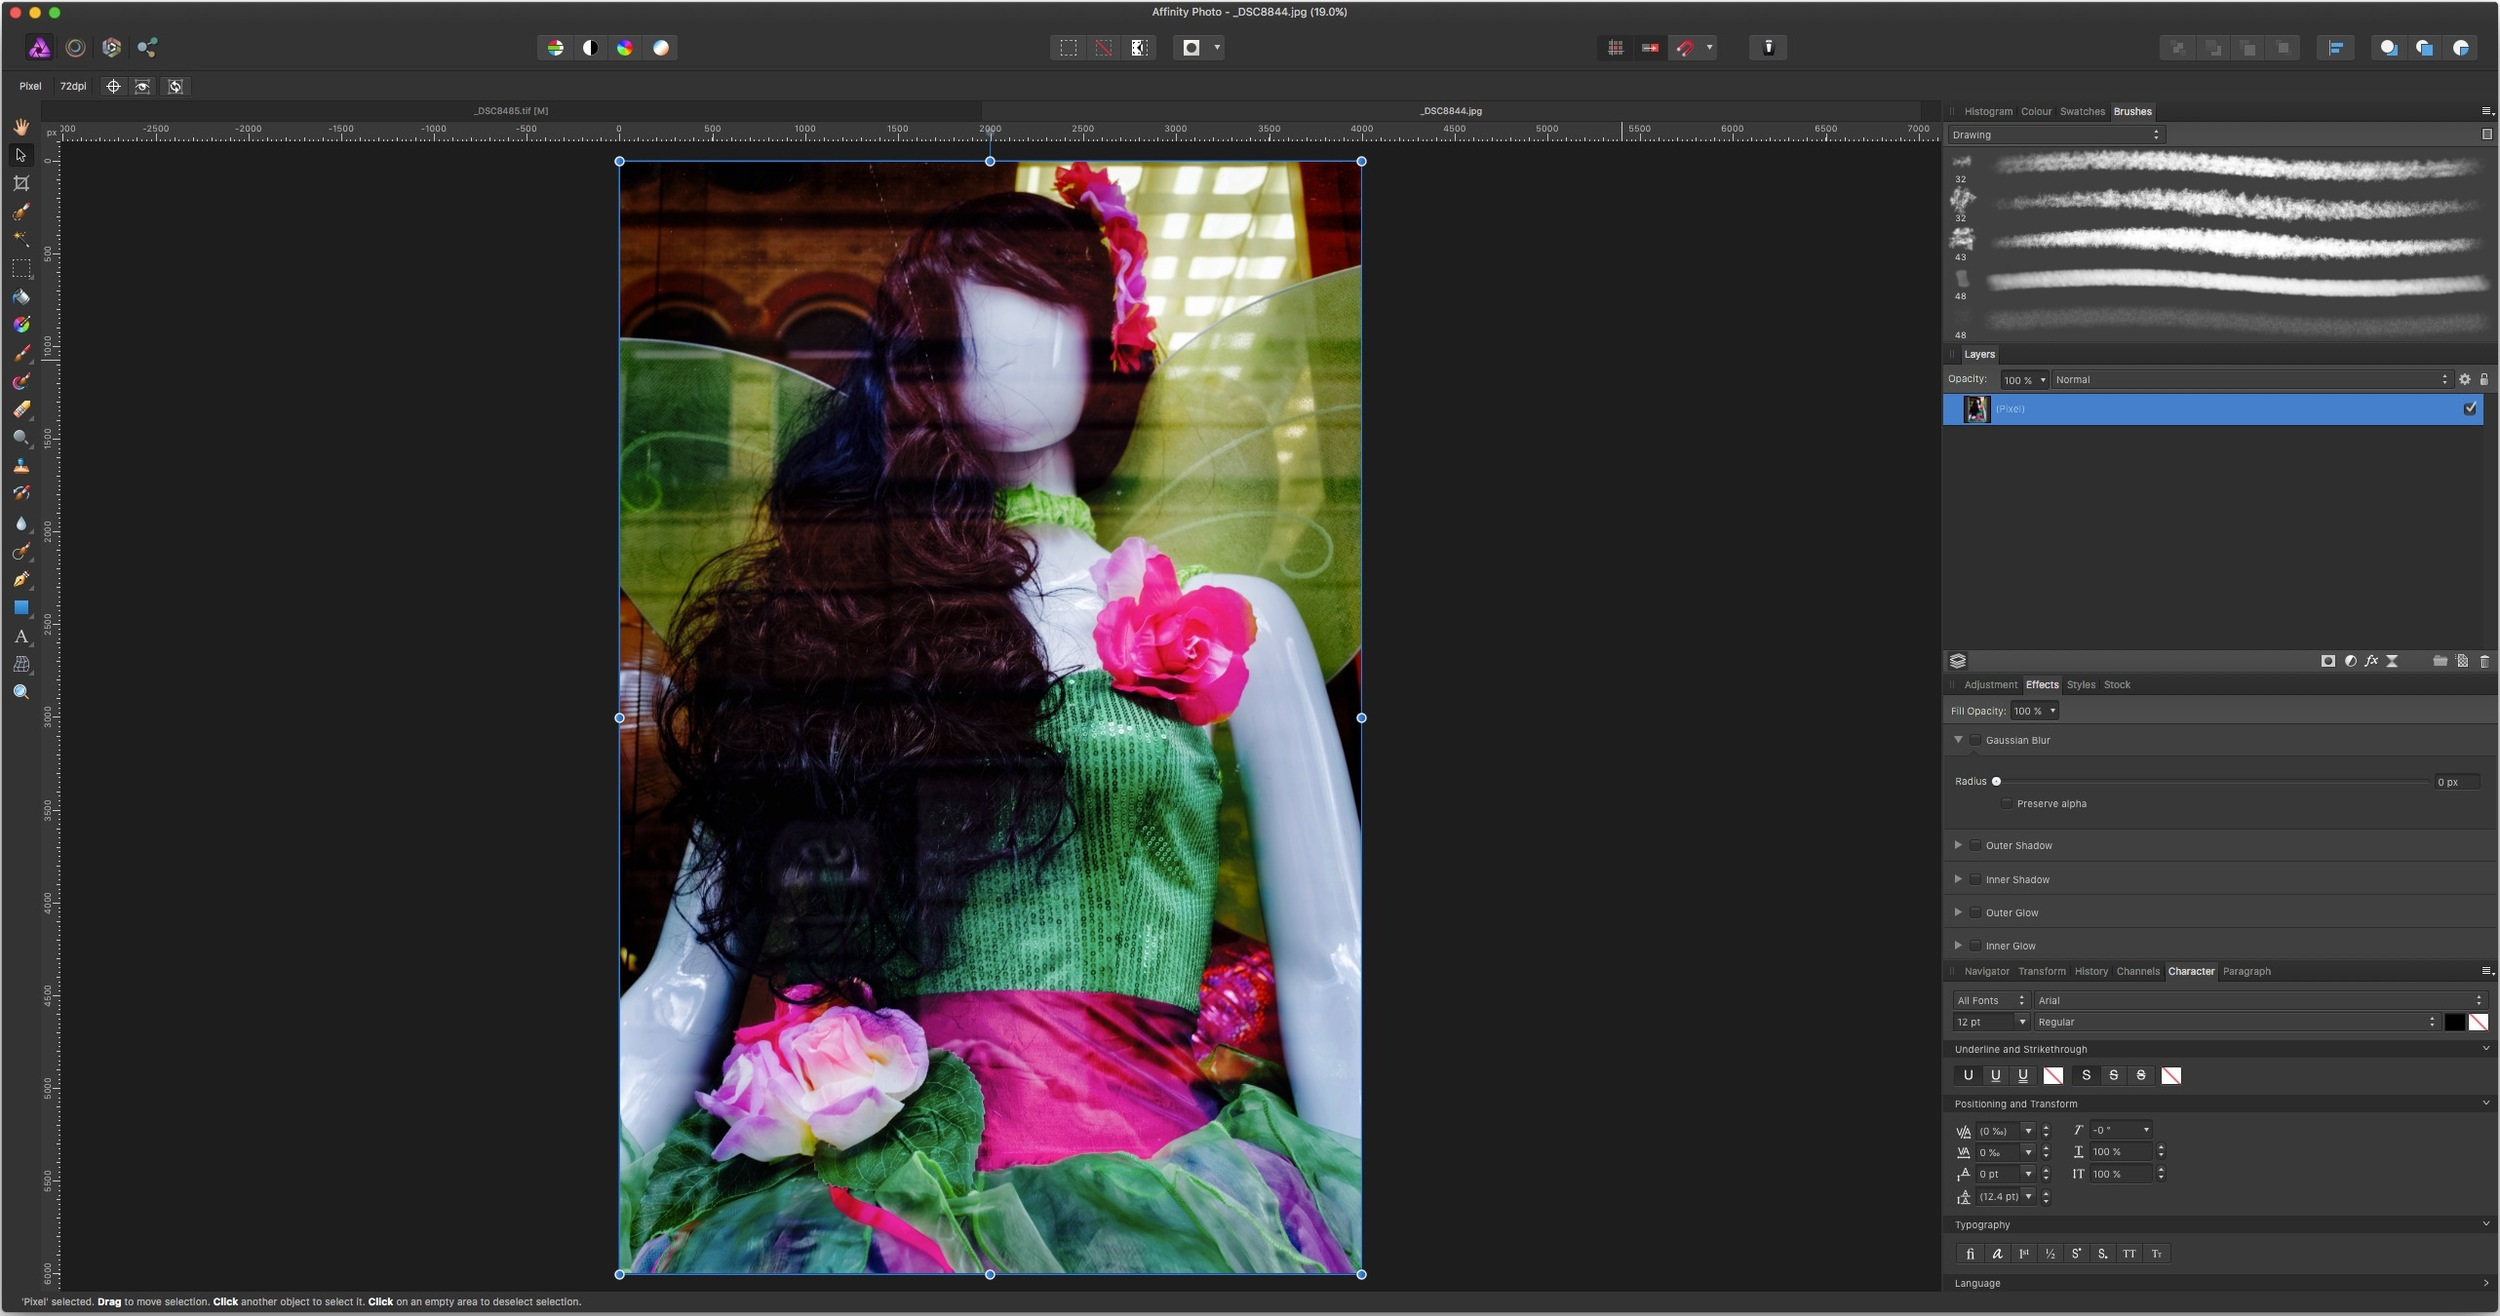 Image being edited in Affinity Photo